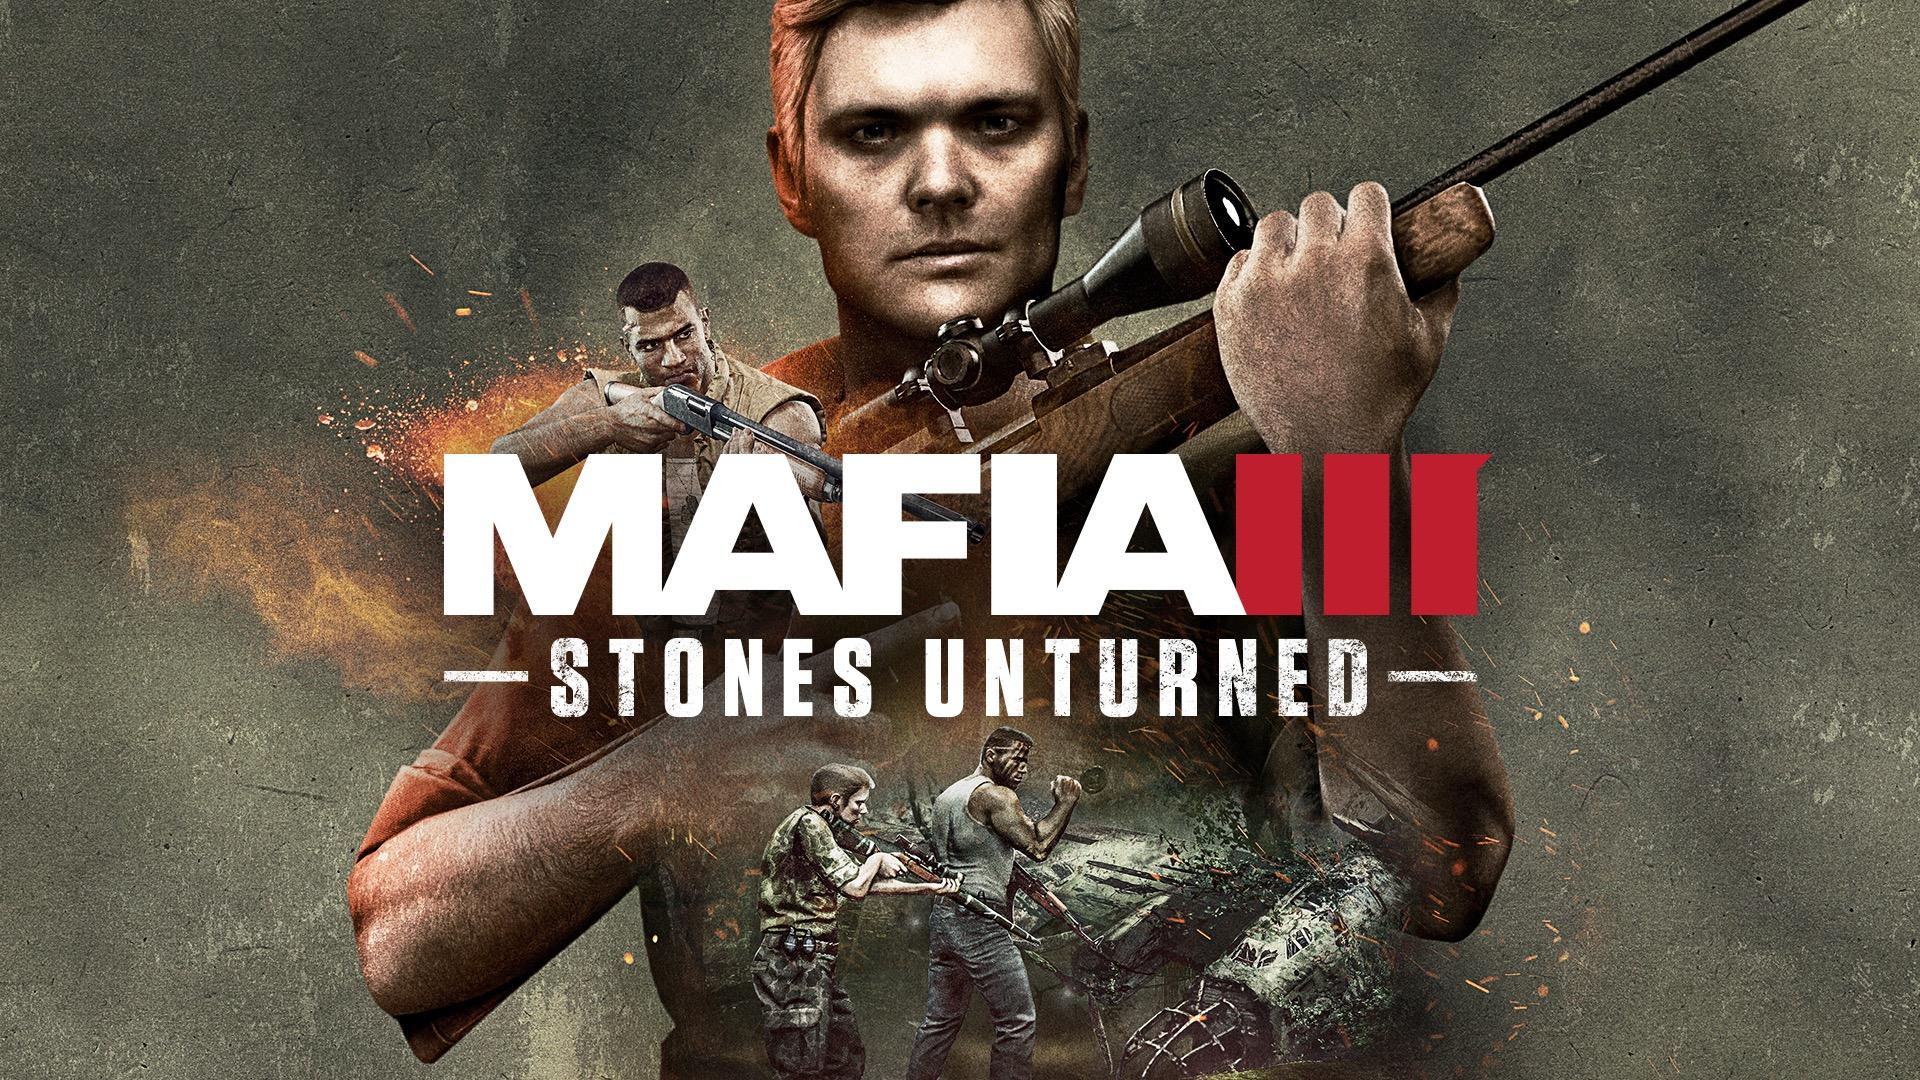 Mafia III: Stones Unturned DLC Released, Launch Trailer